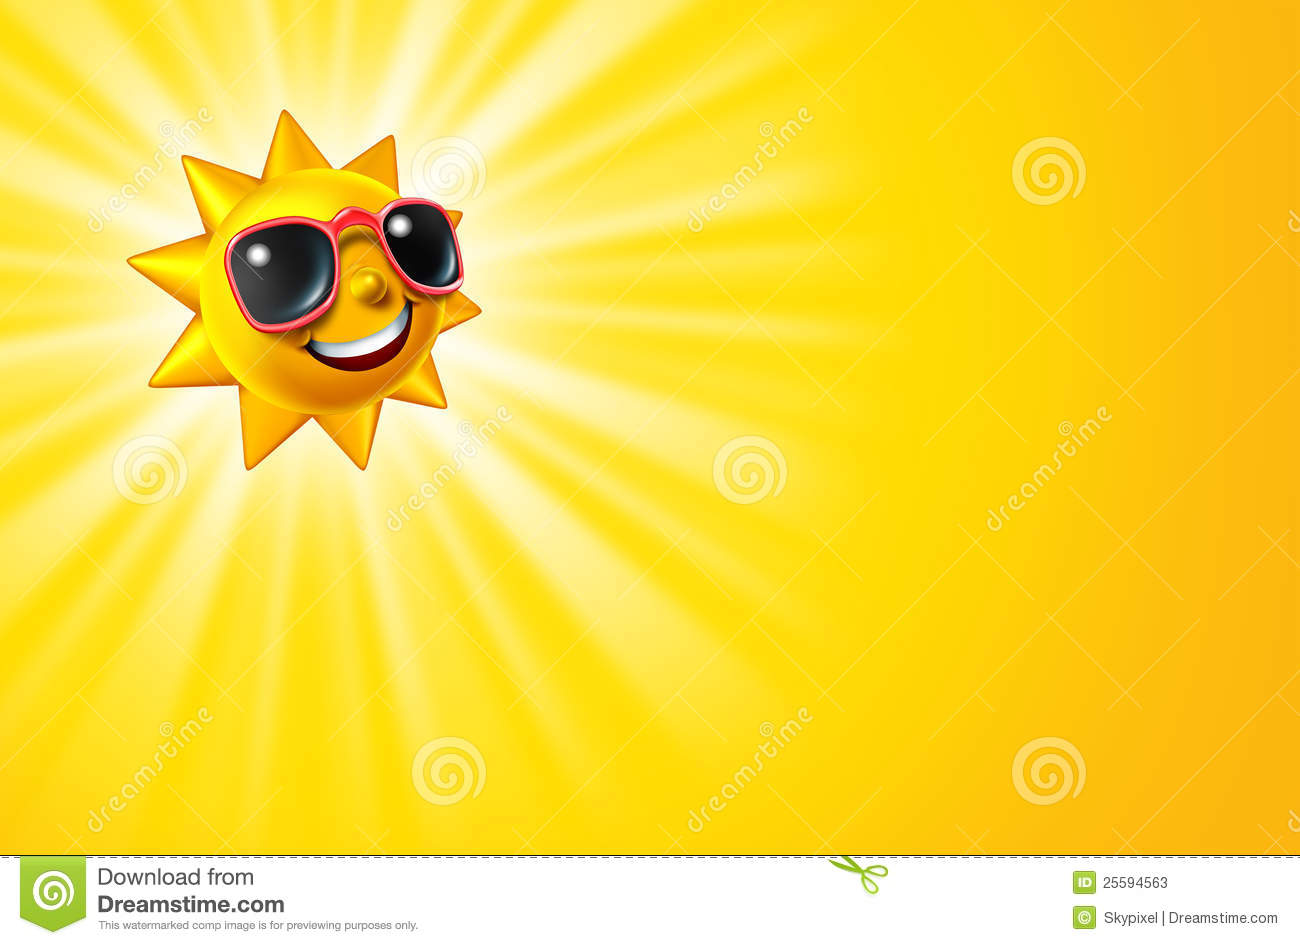 Cool Smiley Face Thumbs Up Smiling Hot Yellow Sun...